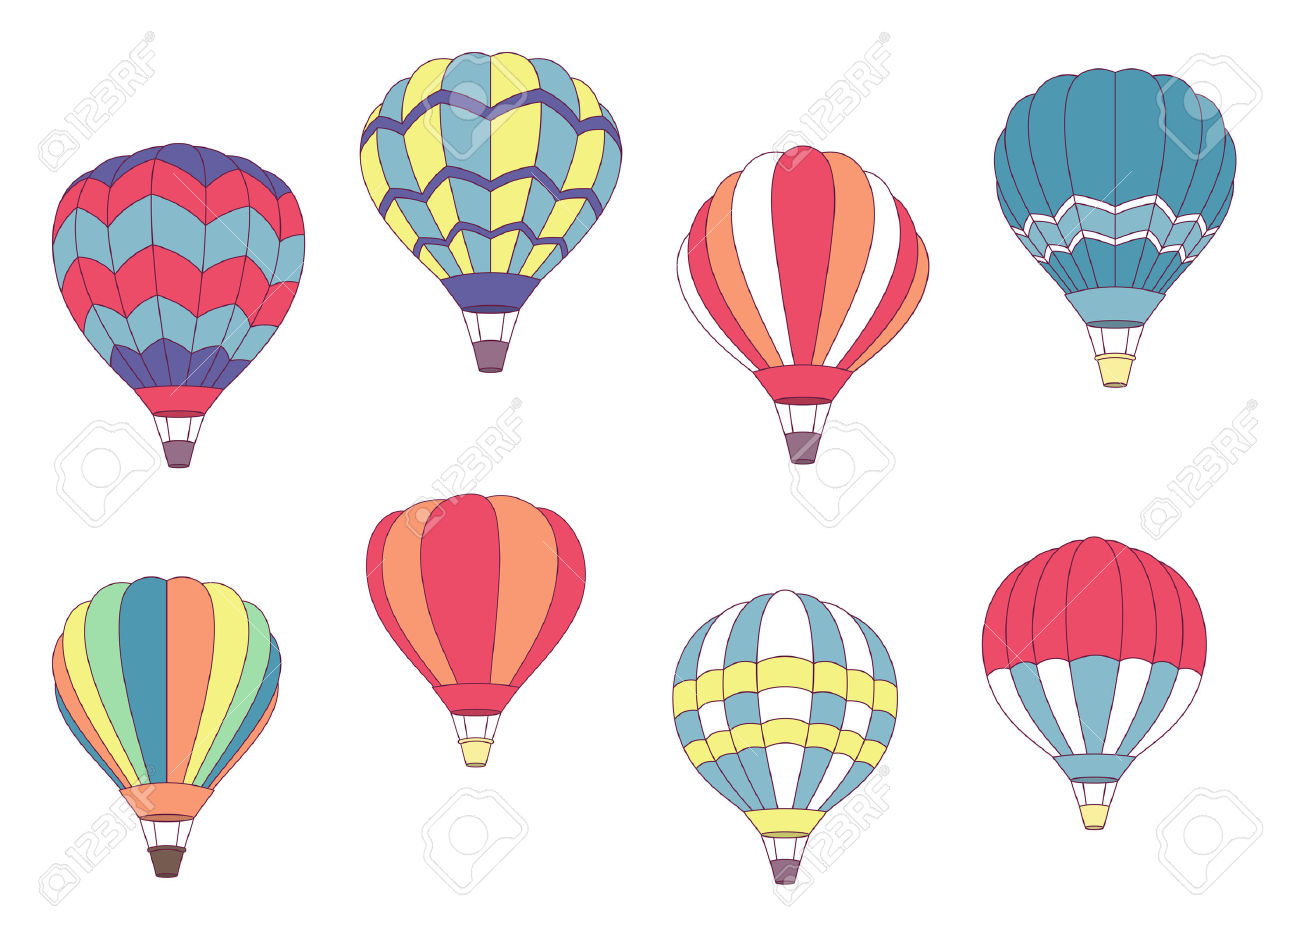 Set Of Colored Hot Air Balloons With Different Patterns On The.